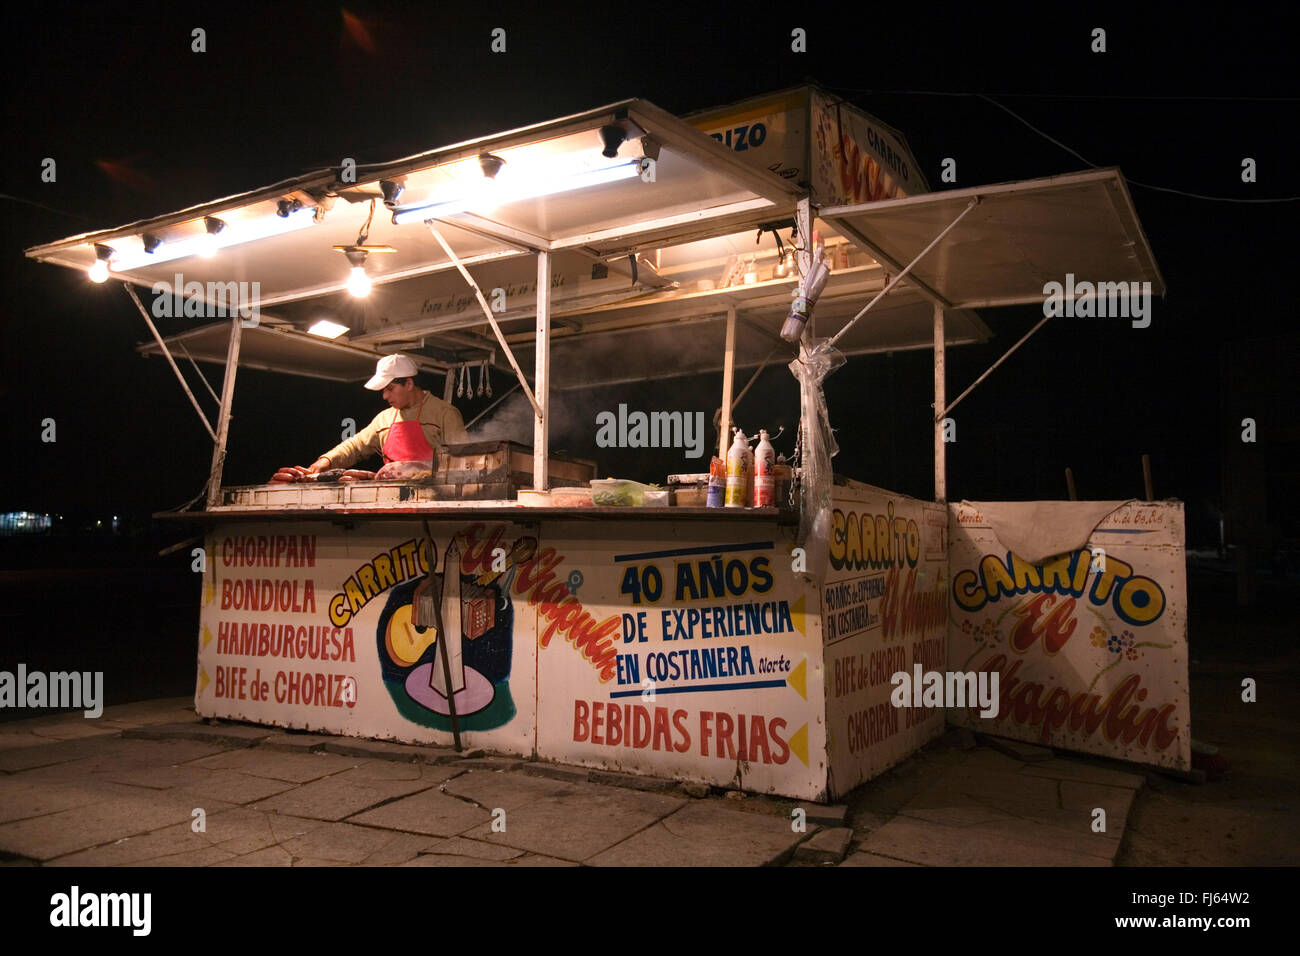 snack food stall at night - Stock Image